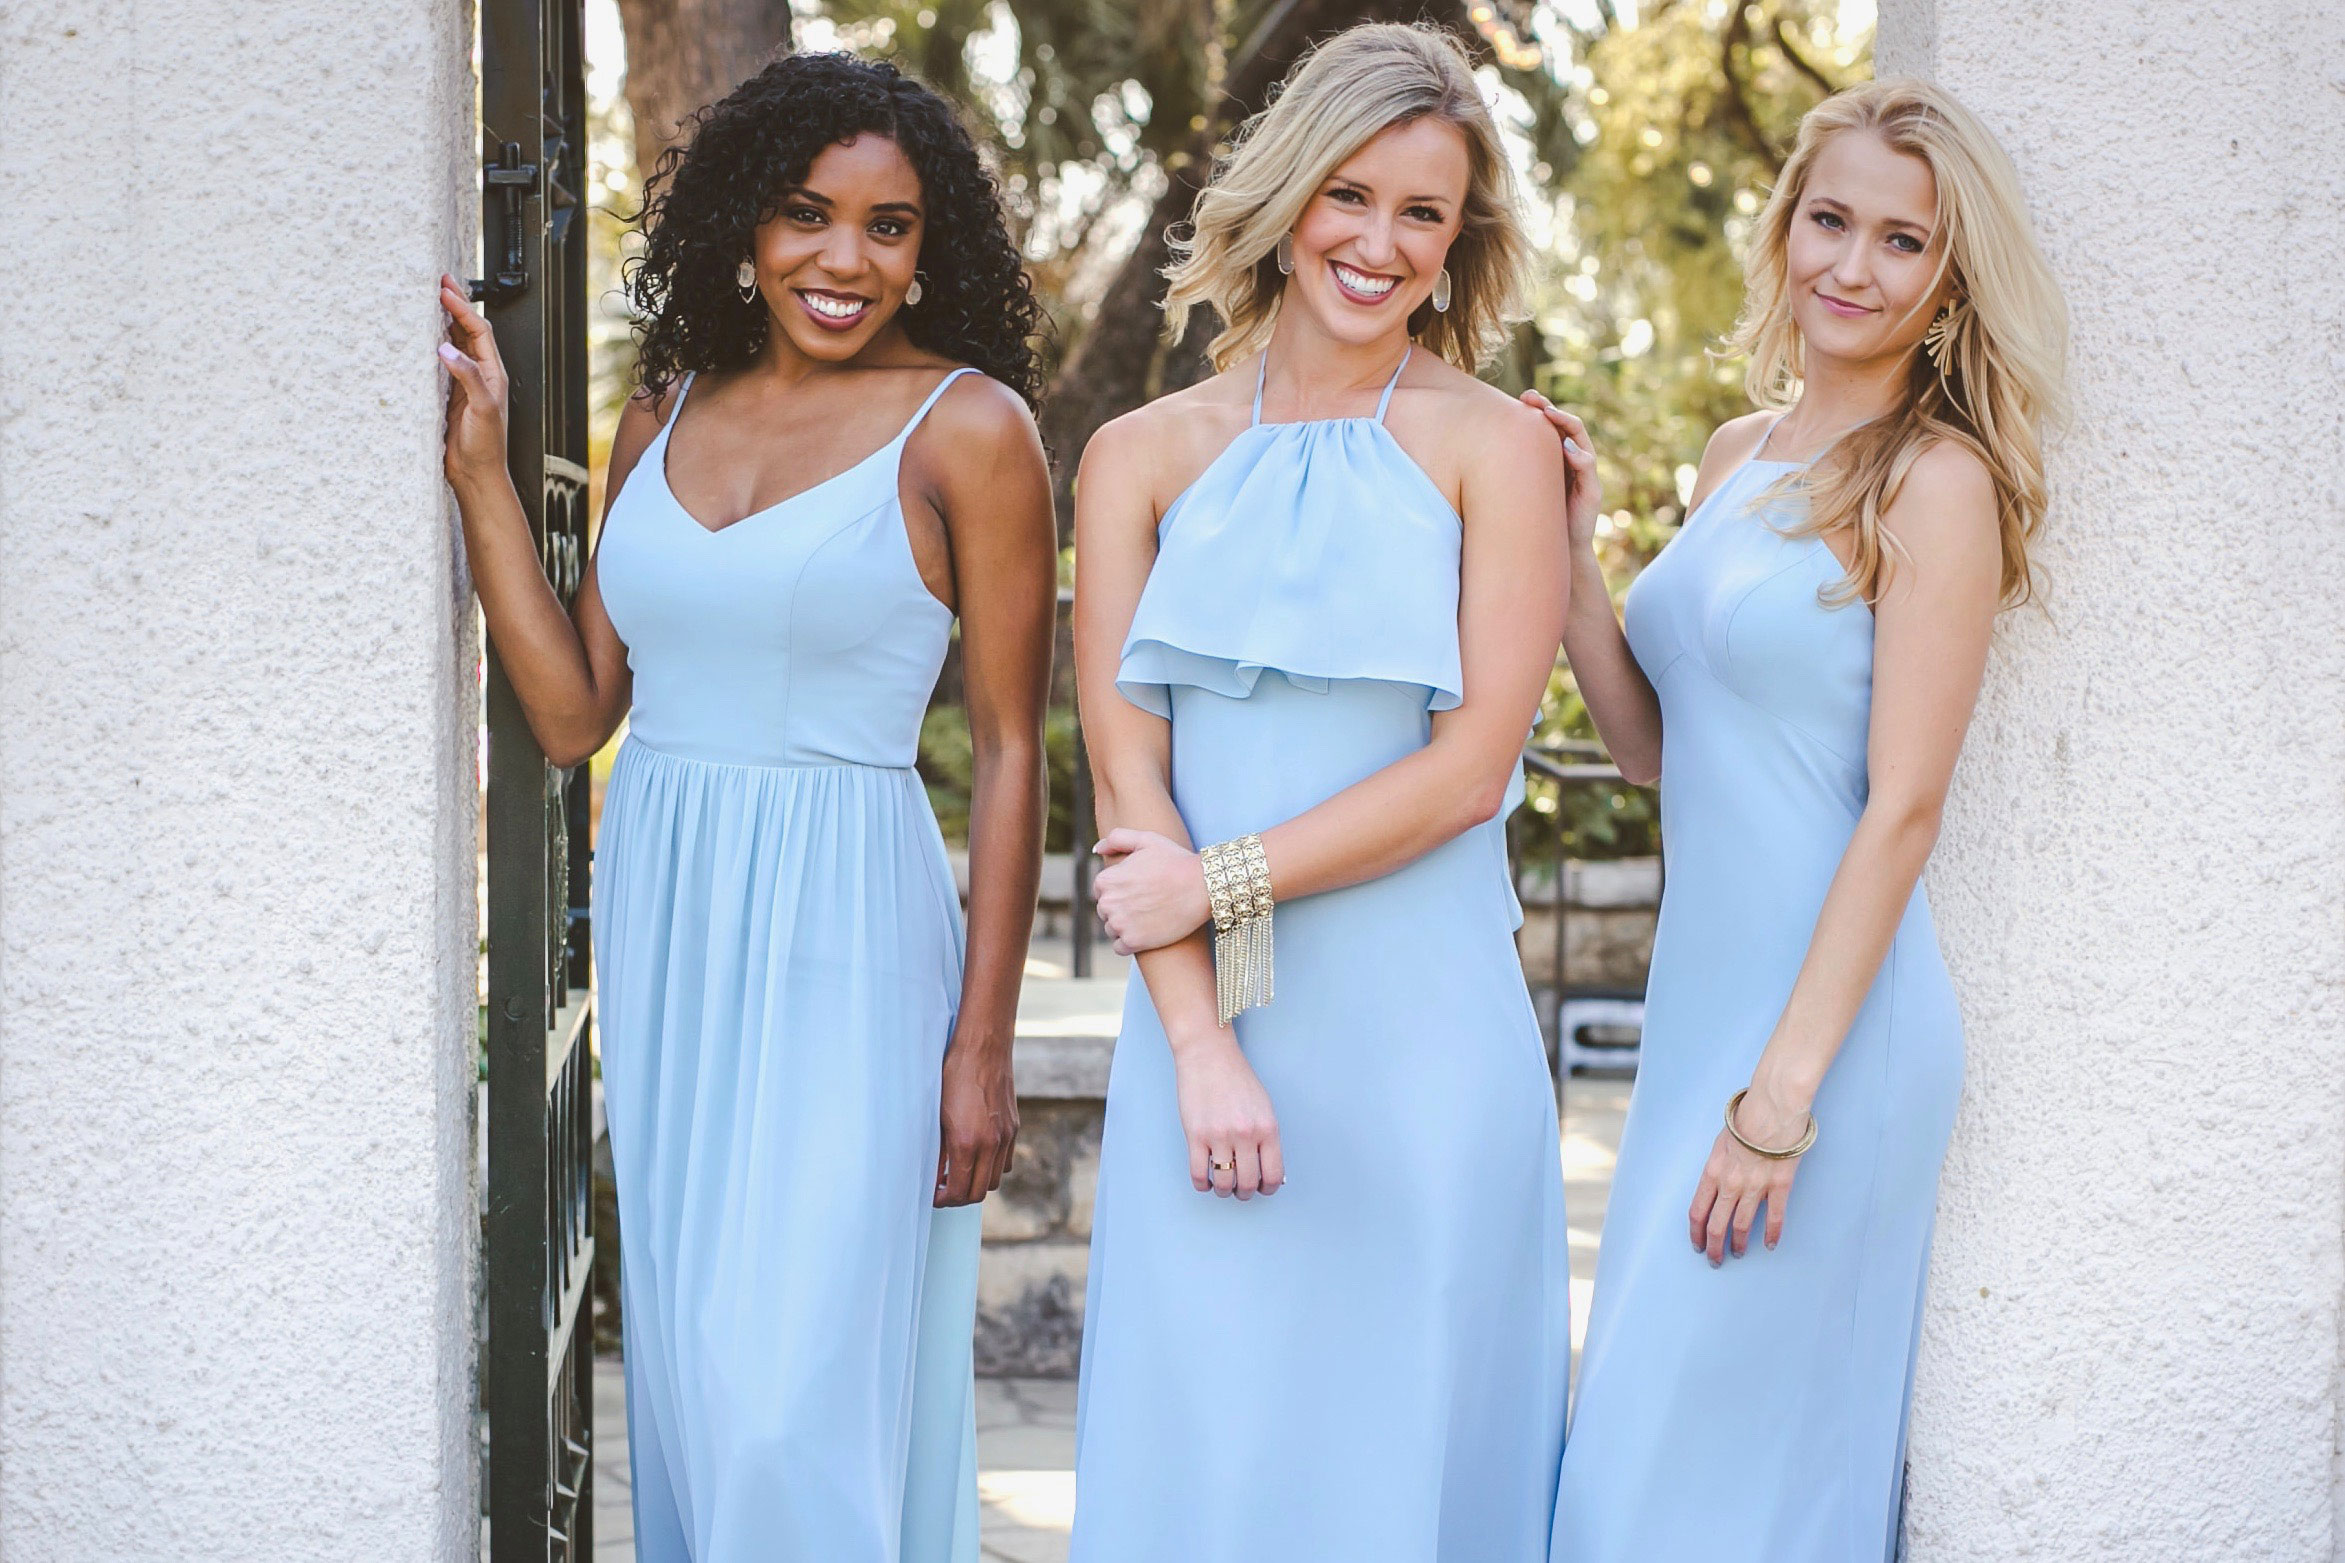 stylish, sleek, and oh soo flattering! these bridesmaid dresses in powder sky chiffon are the summer styles your bridesmaids are dreaming of.